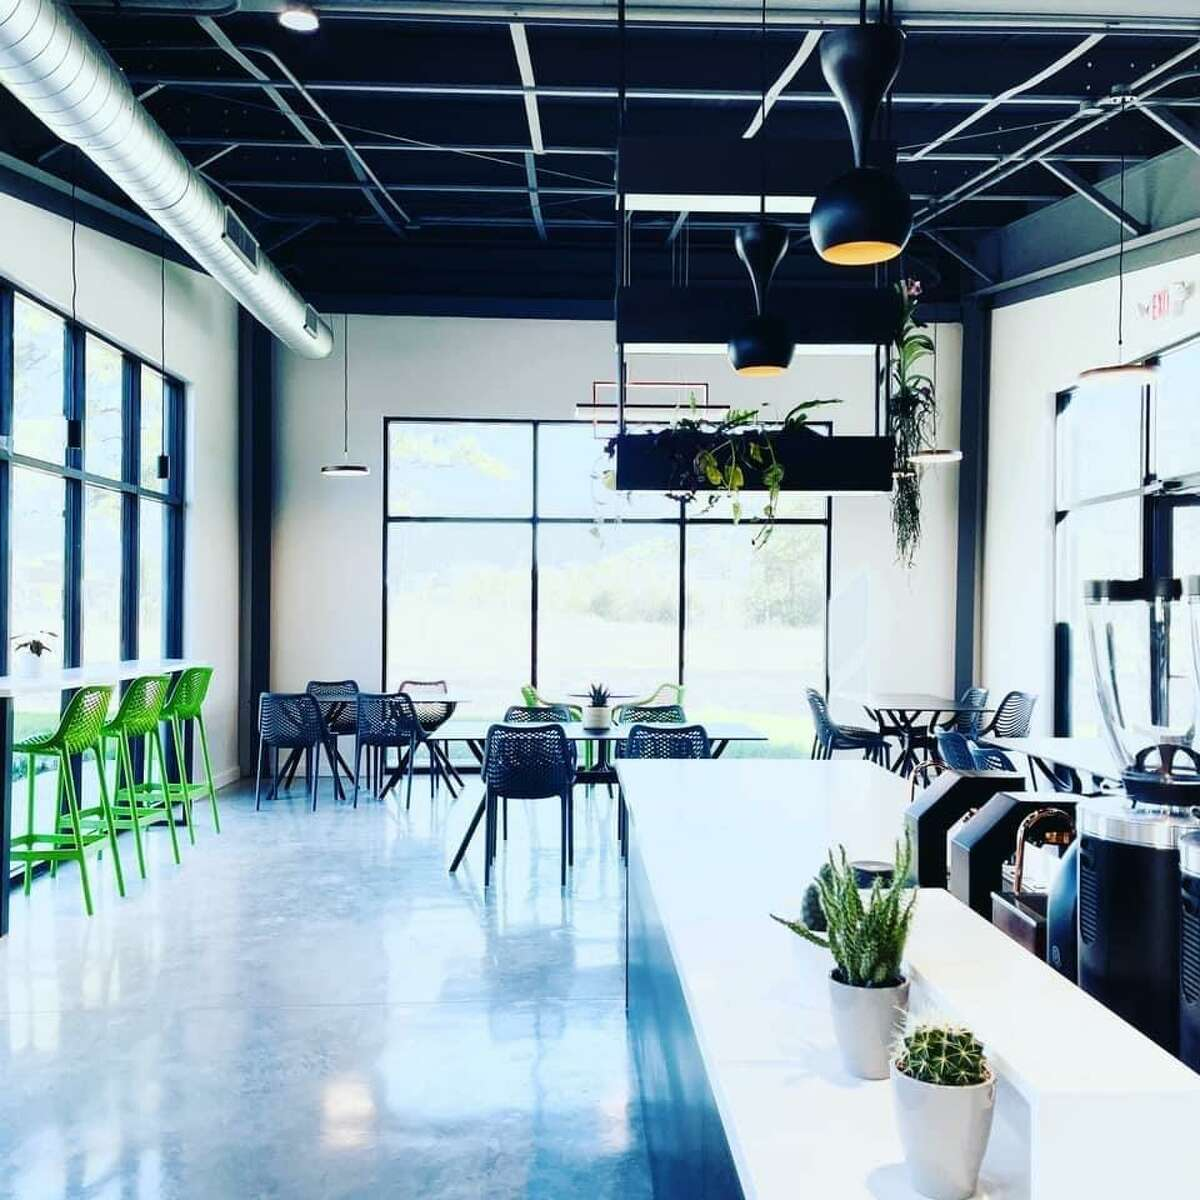 The interior features pendant lights hanging from the open ceiling revealing the maze of piping infrastructure that supports the café. The color palette sports a combination of pea green and gray chairs, with white quartz countertops, and light gray polished and sealed concrete floors.